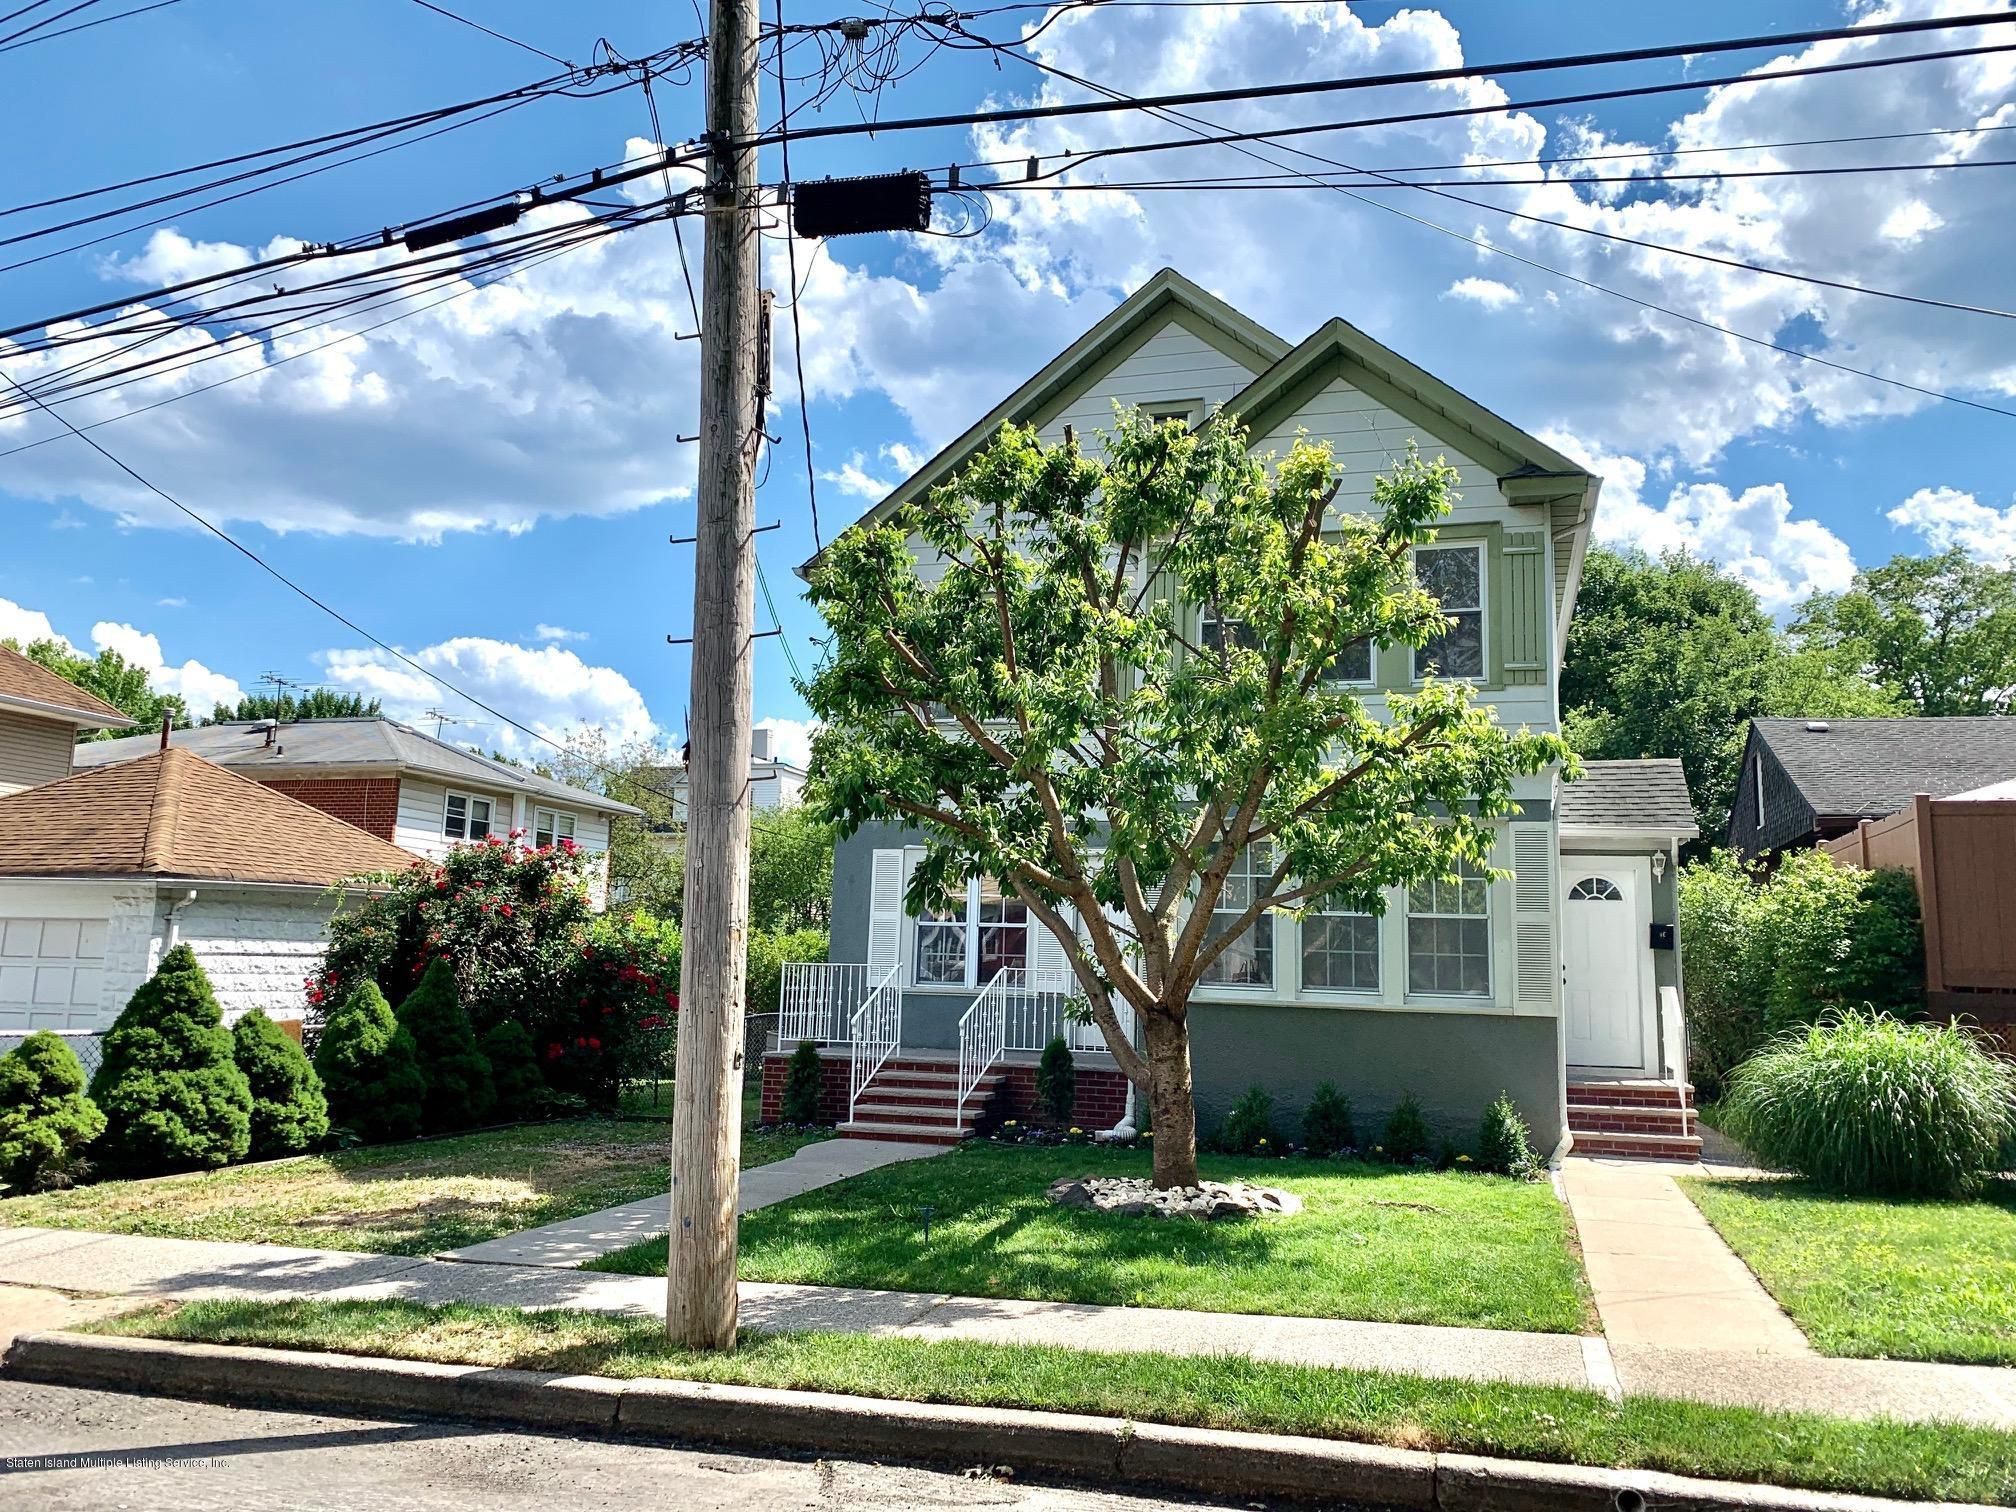 Two Family - Detached 20 Locust Avenue  Staten Island, NY 10306, MLS-1138037-2